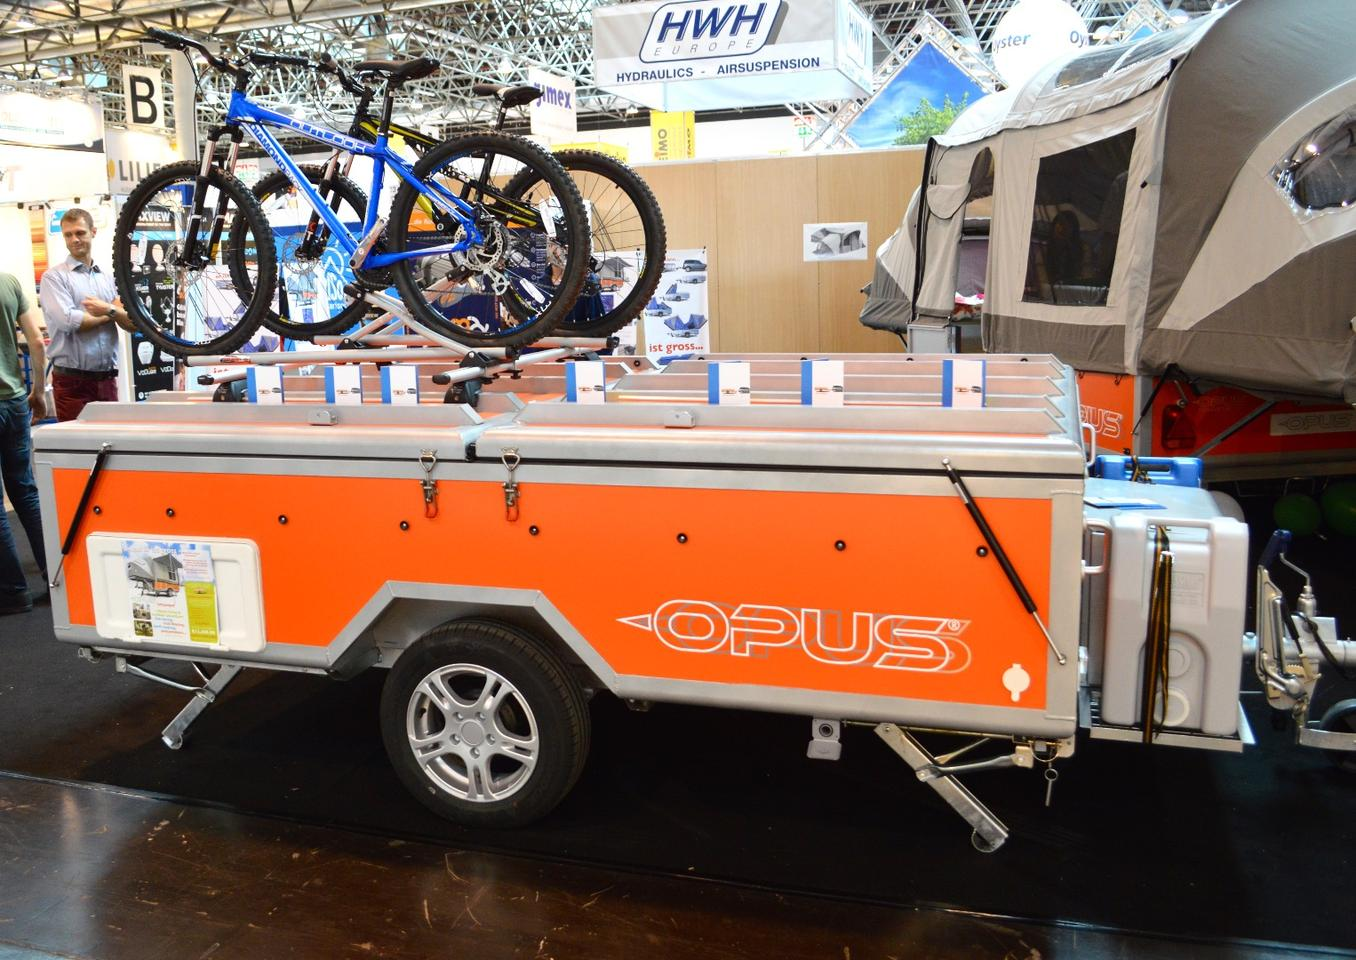 Shown here at the 2013 Düsseldorf Caravan Salon, the original Opus was prepared to haul bikes or kayaks, but not motorcycles